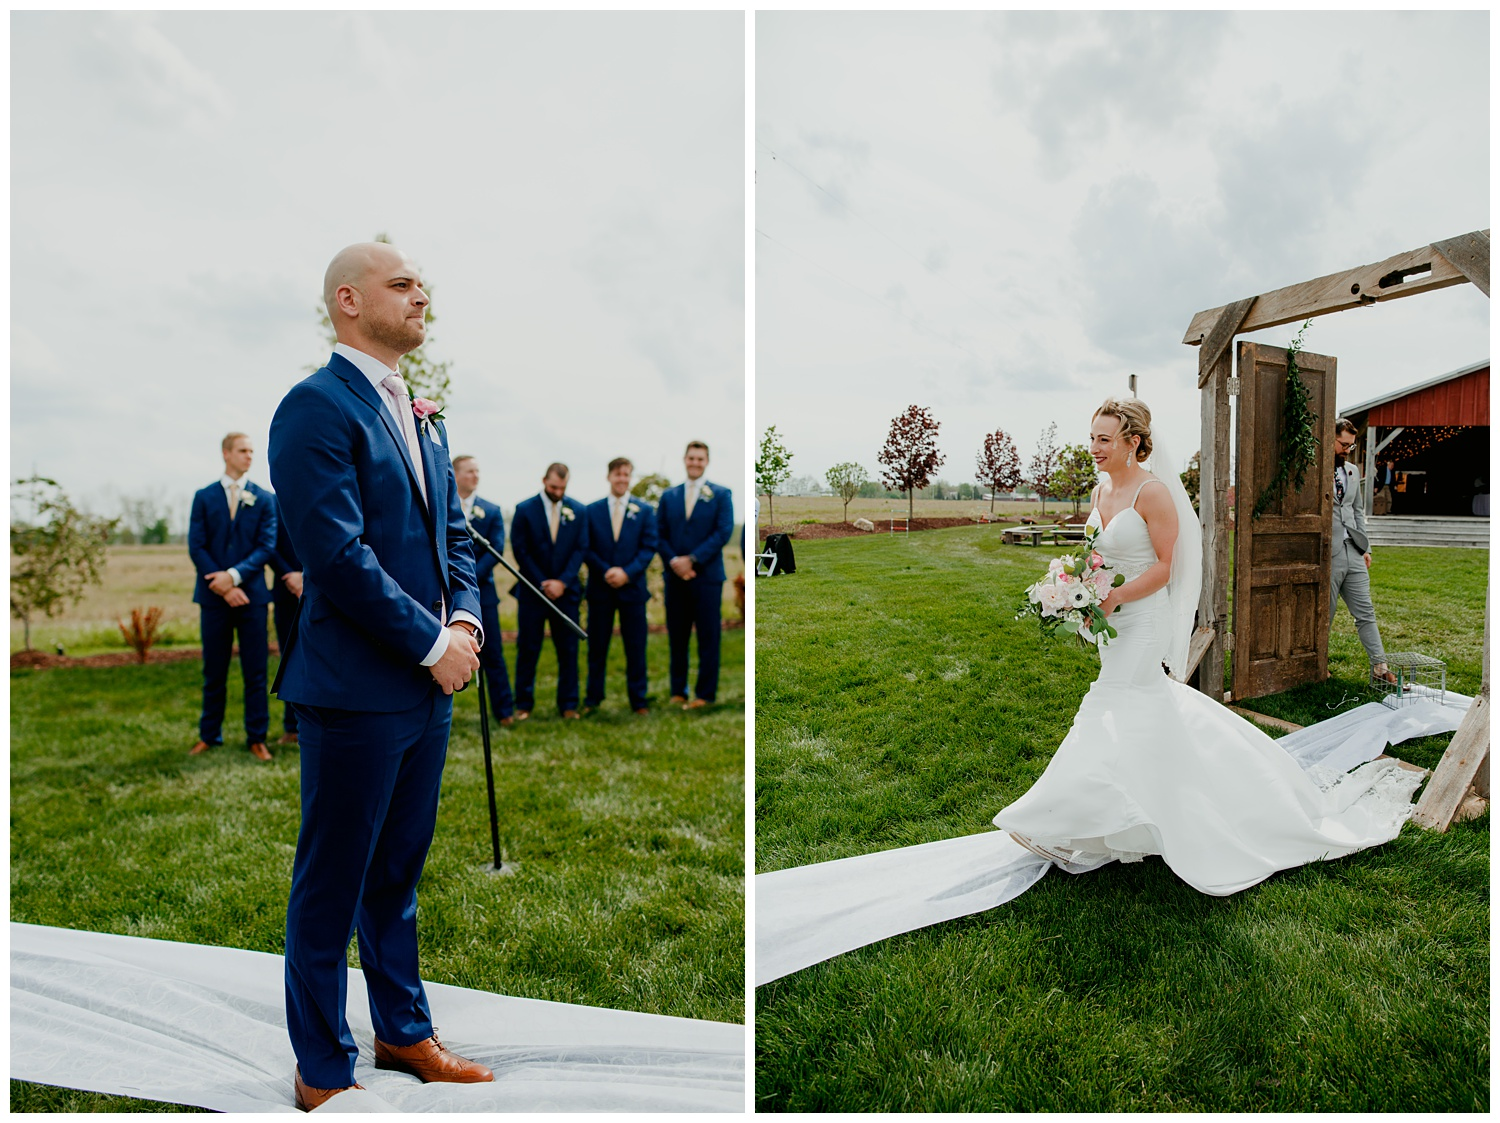 blissfulbarn threeoaks michigan wedding photography journeymandistillery56.jpg